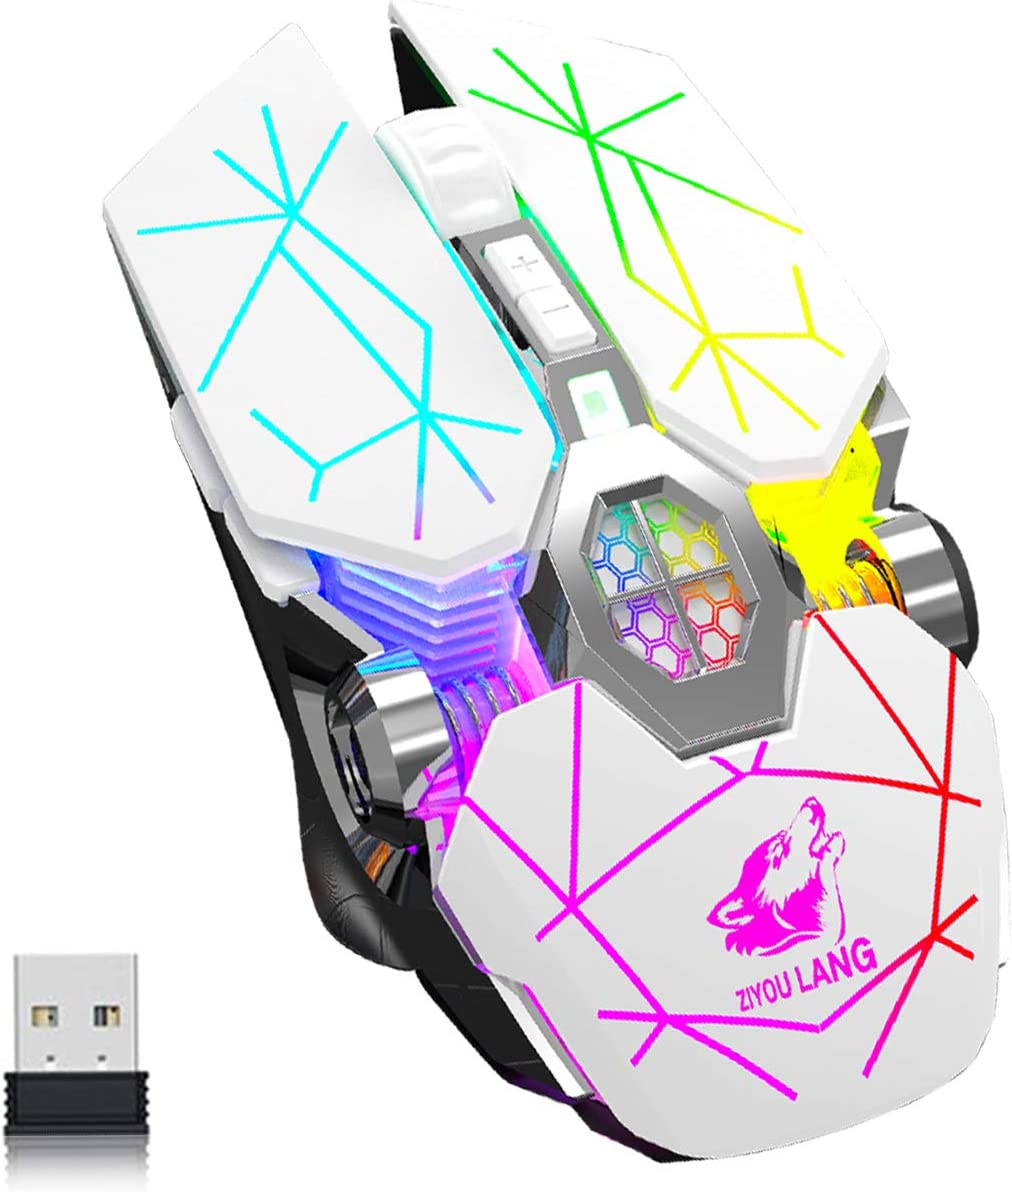 Wireless Bluetooth Gaming Mouse Rechargeable with 7 Button Rainbow RGB Multi Color Breathing Backlit 3 Adjustable DPI Ergonomic Grip Slient Click Power Saving Mode for PC Mac Gamer Officer(StarWhite)